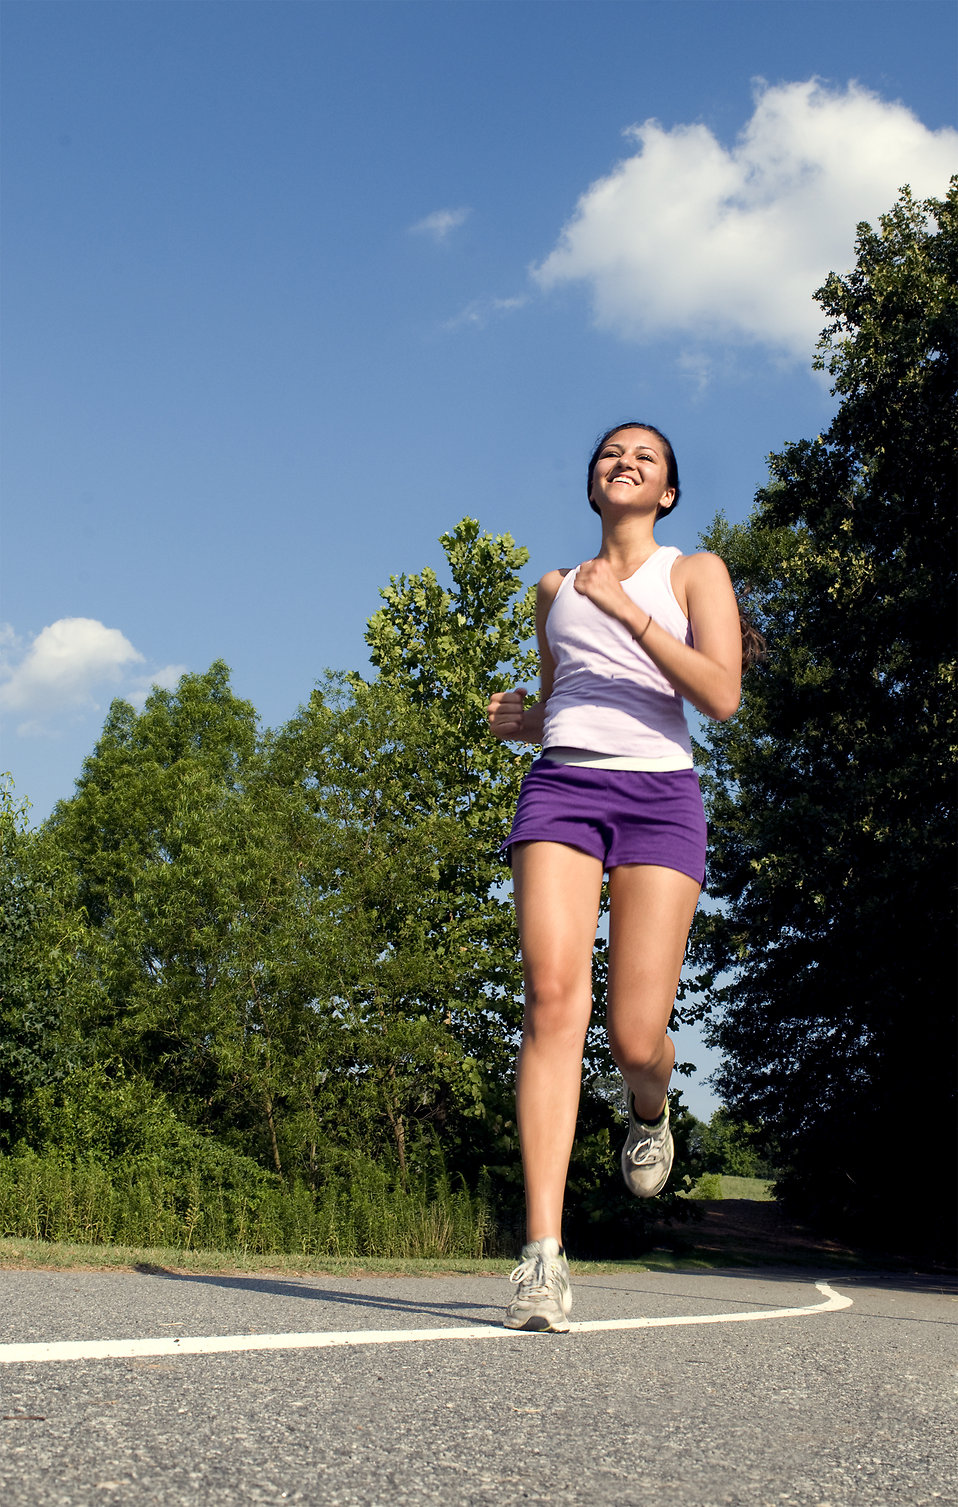 A young woman jogging outdoors : Free Stock Photo